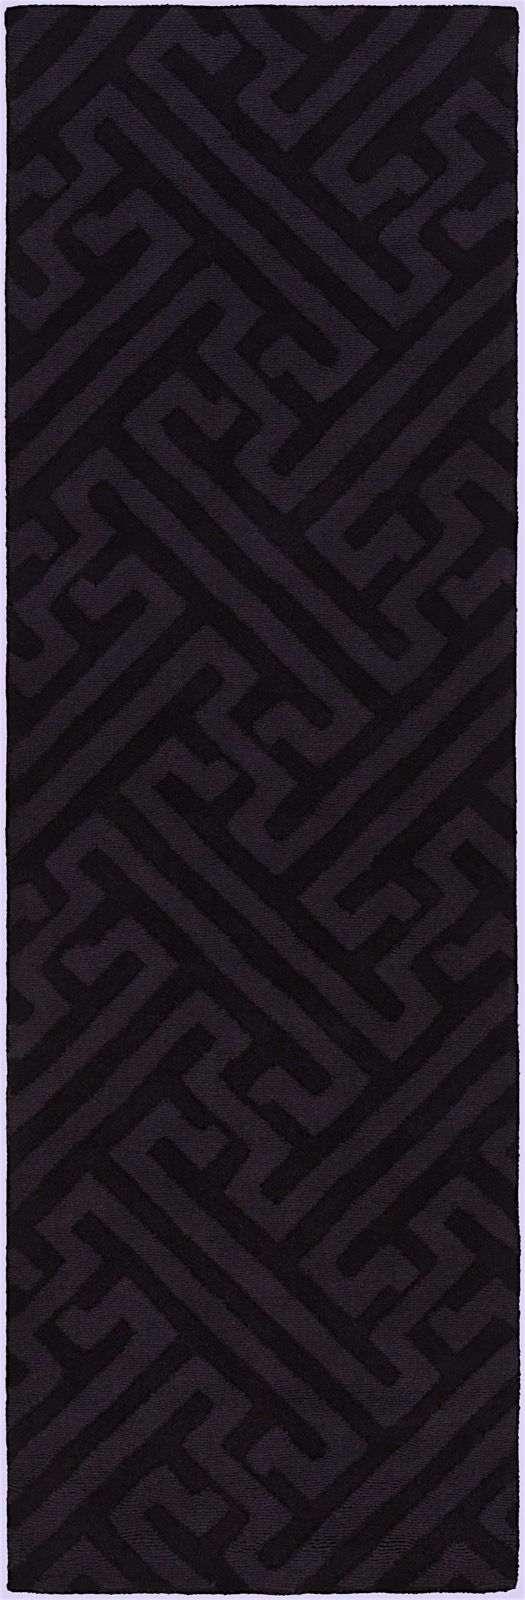 surya the oakes contemporary area rug collection